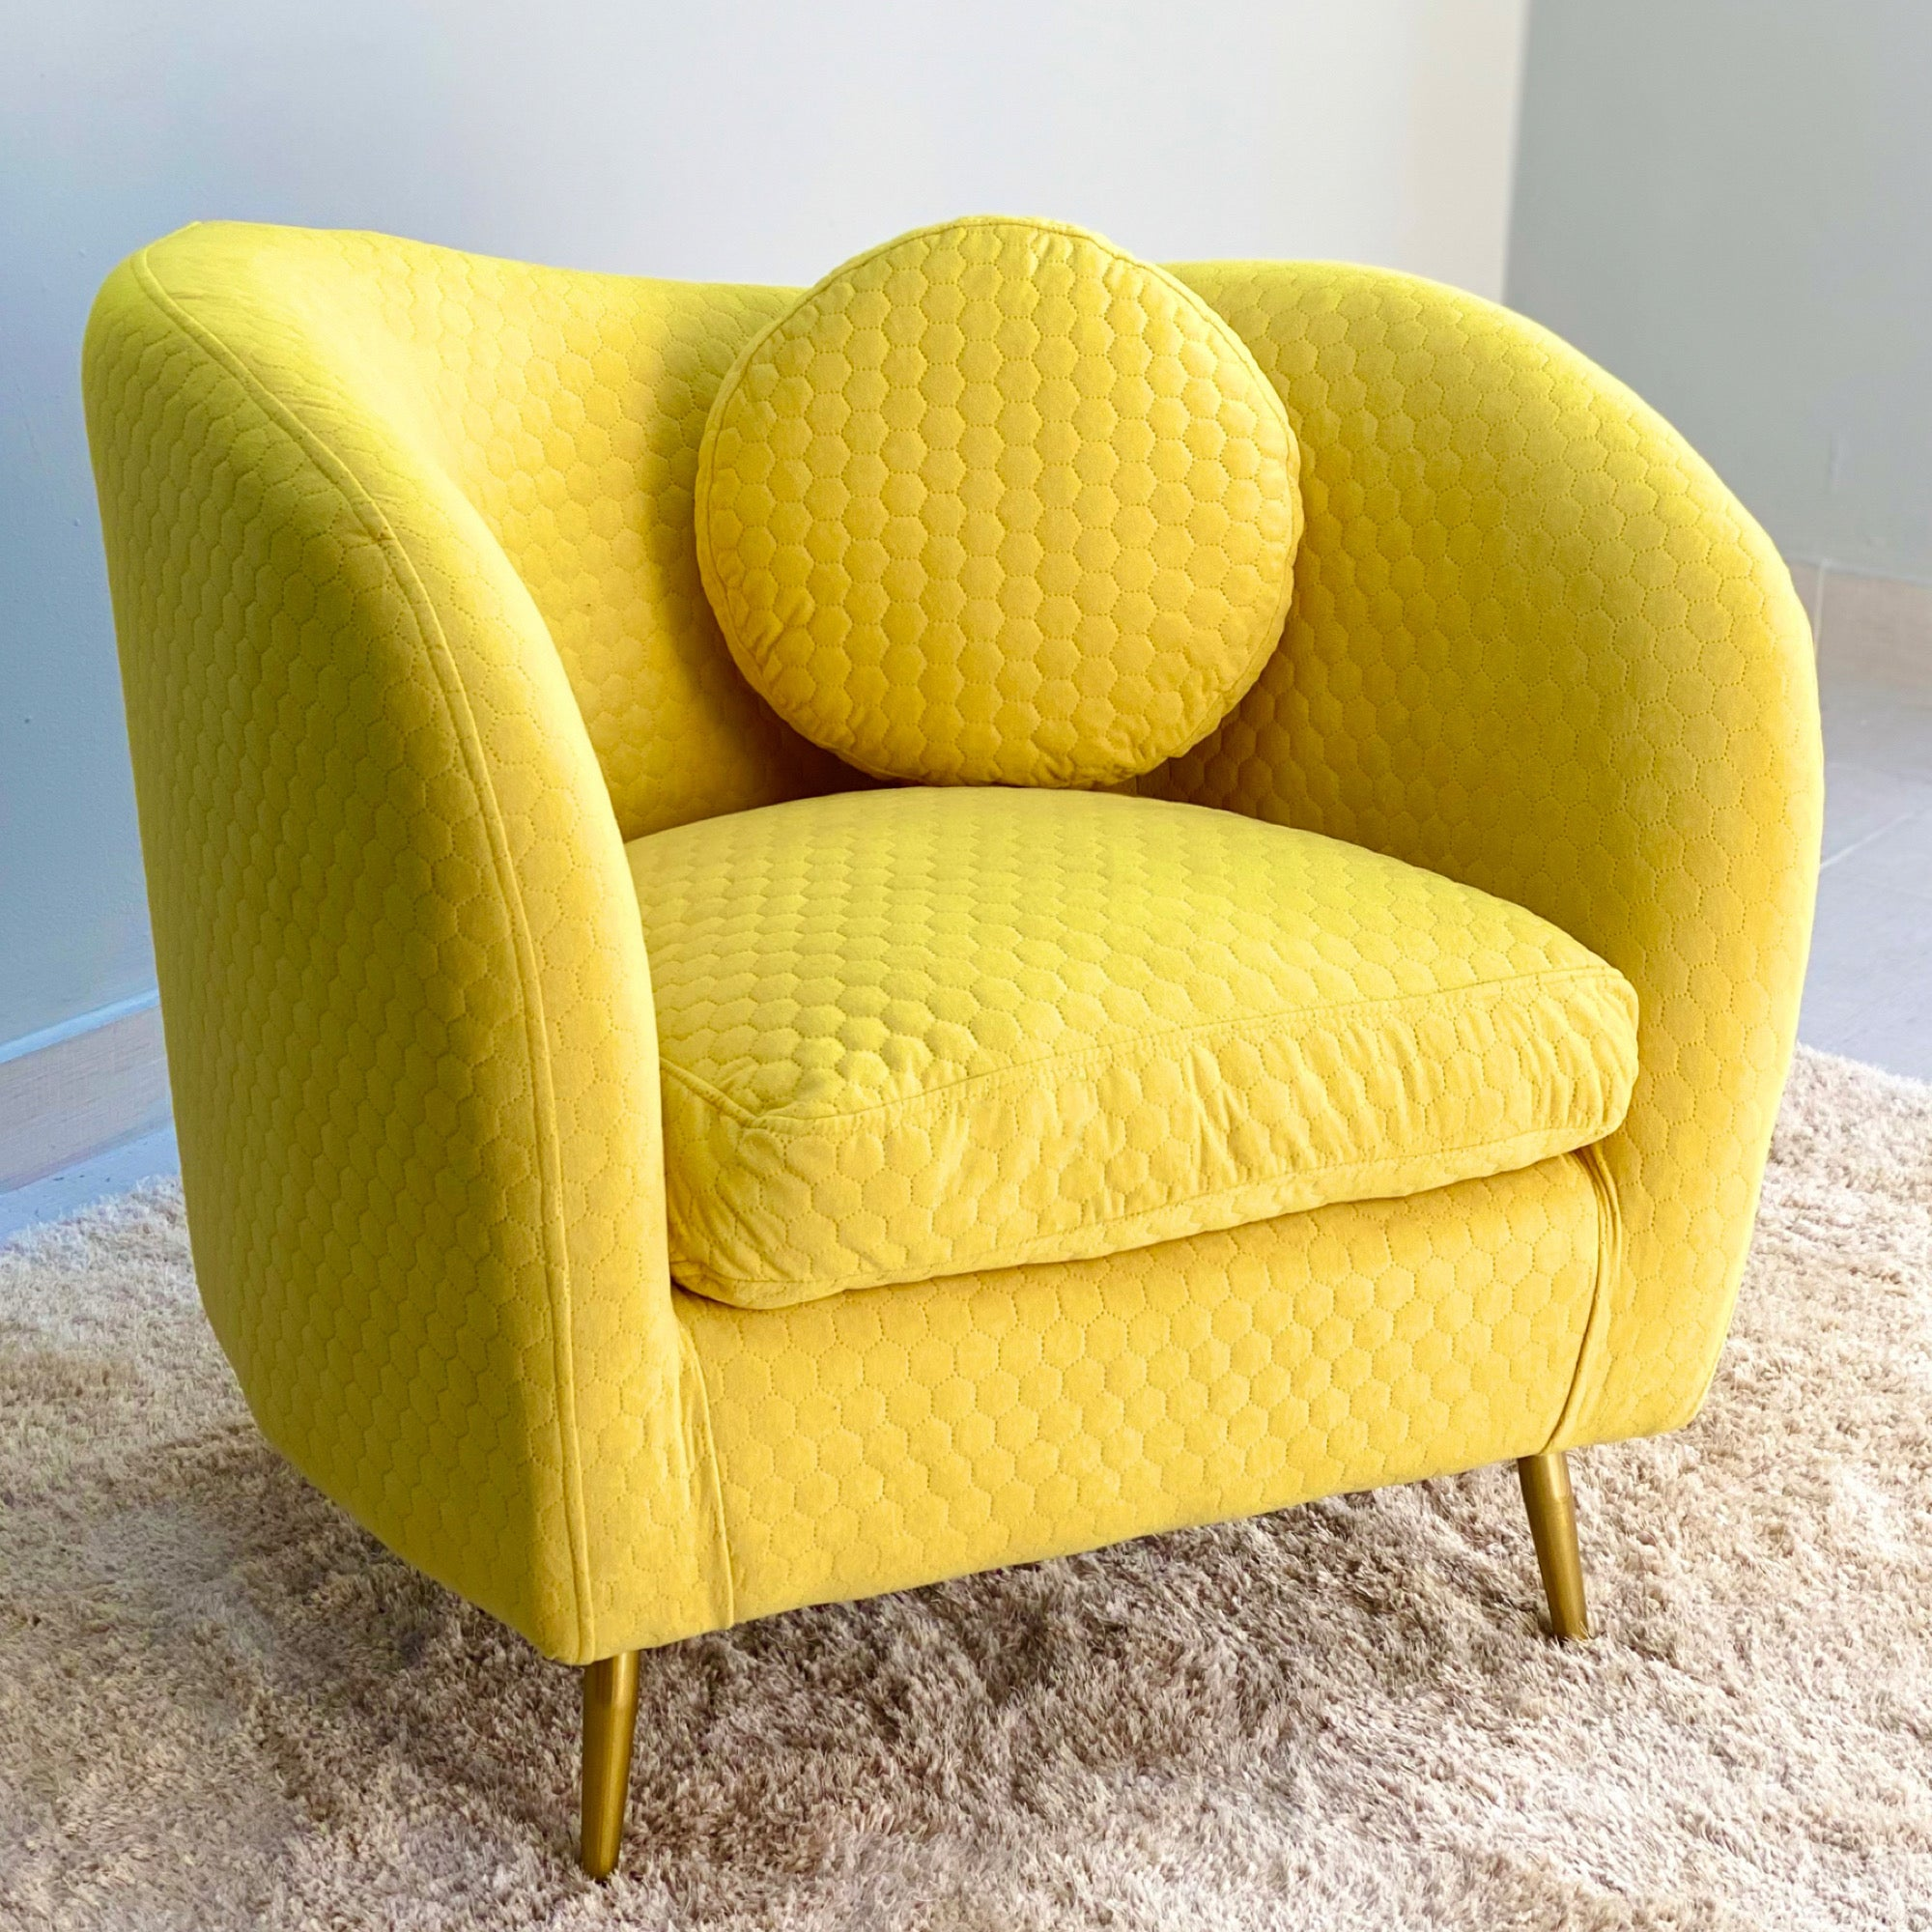 Curvy Velvet Yellow Chair